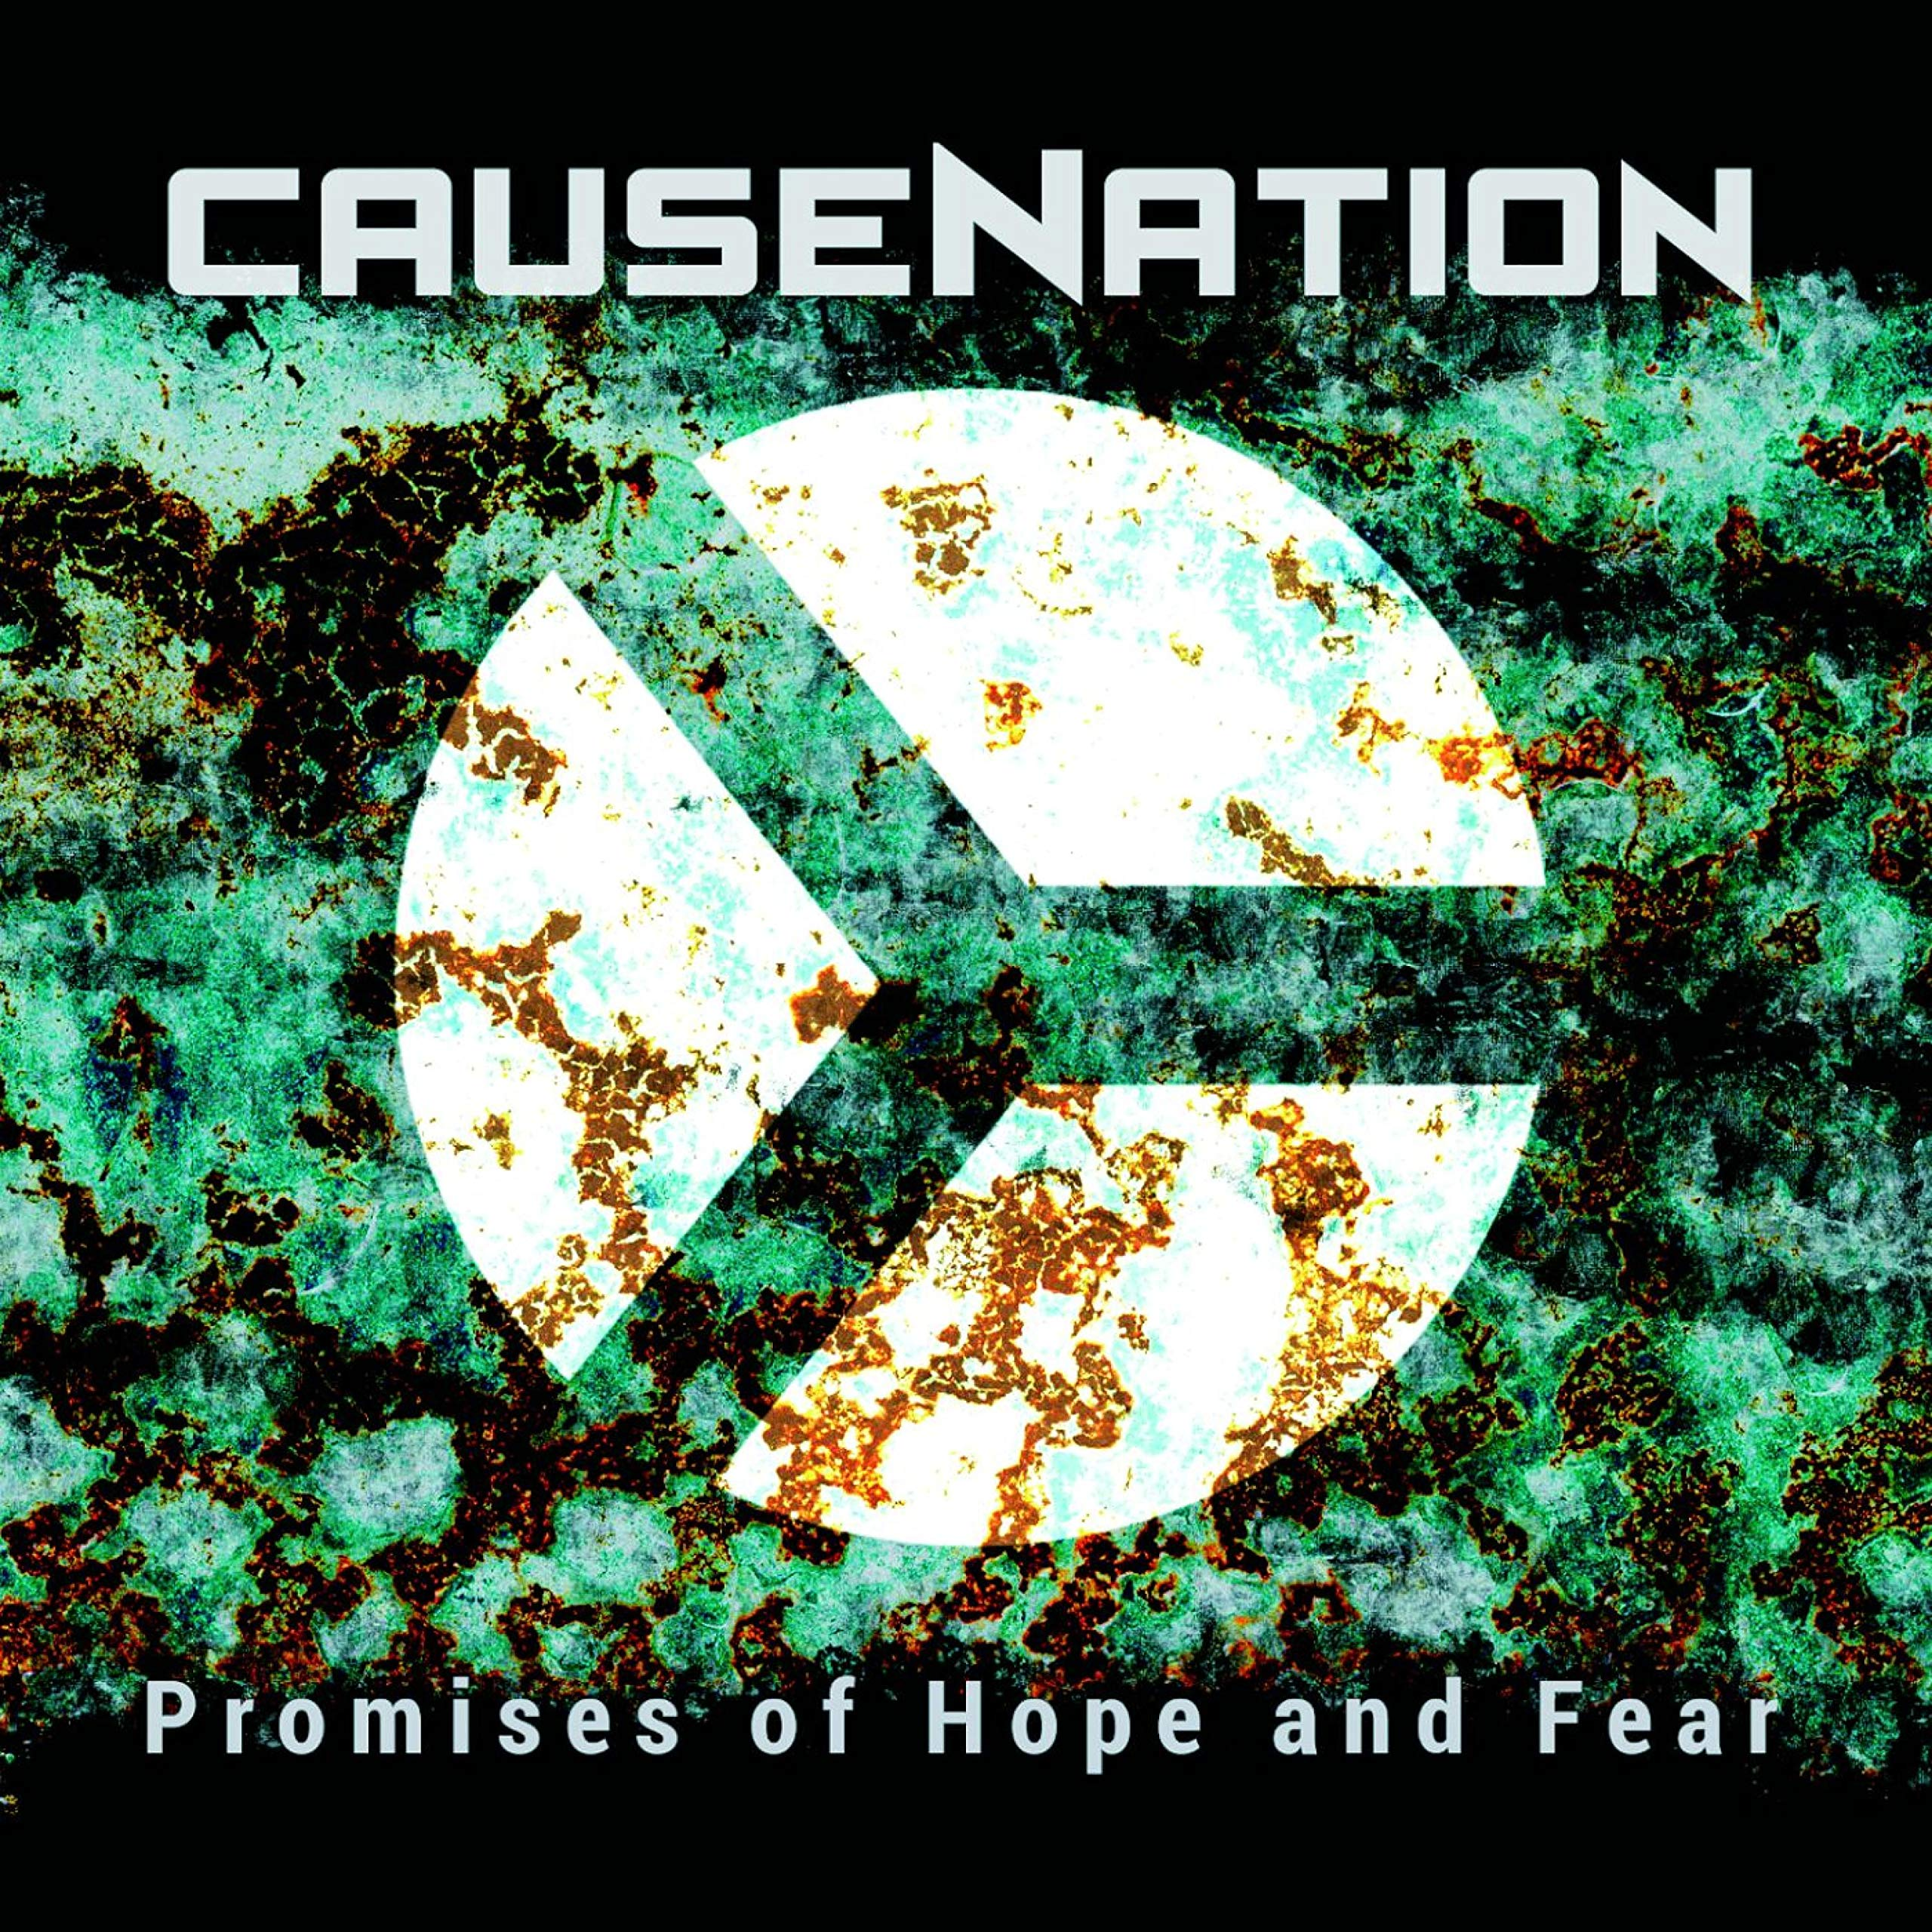 Causenation - Promises Of Hope And Fear (2021) [FLAC] Download